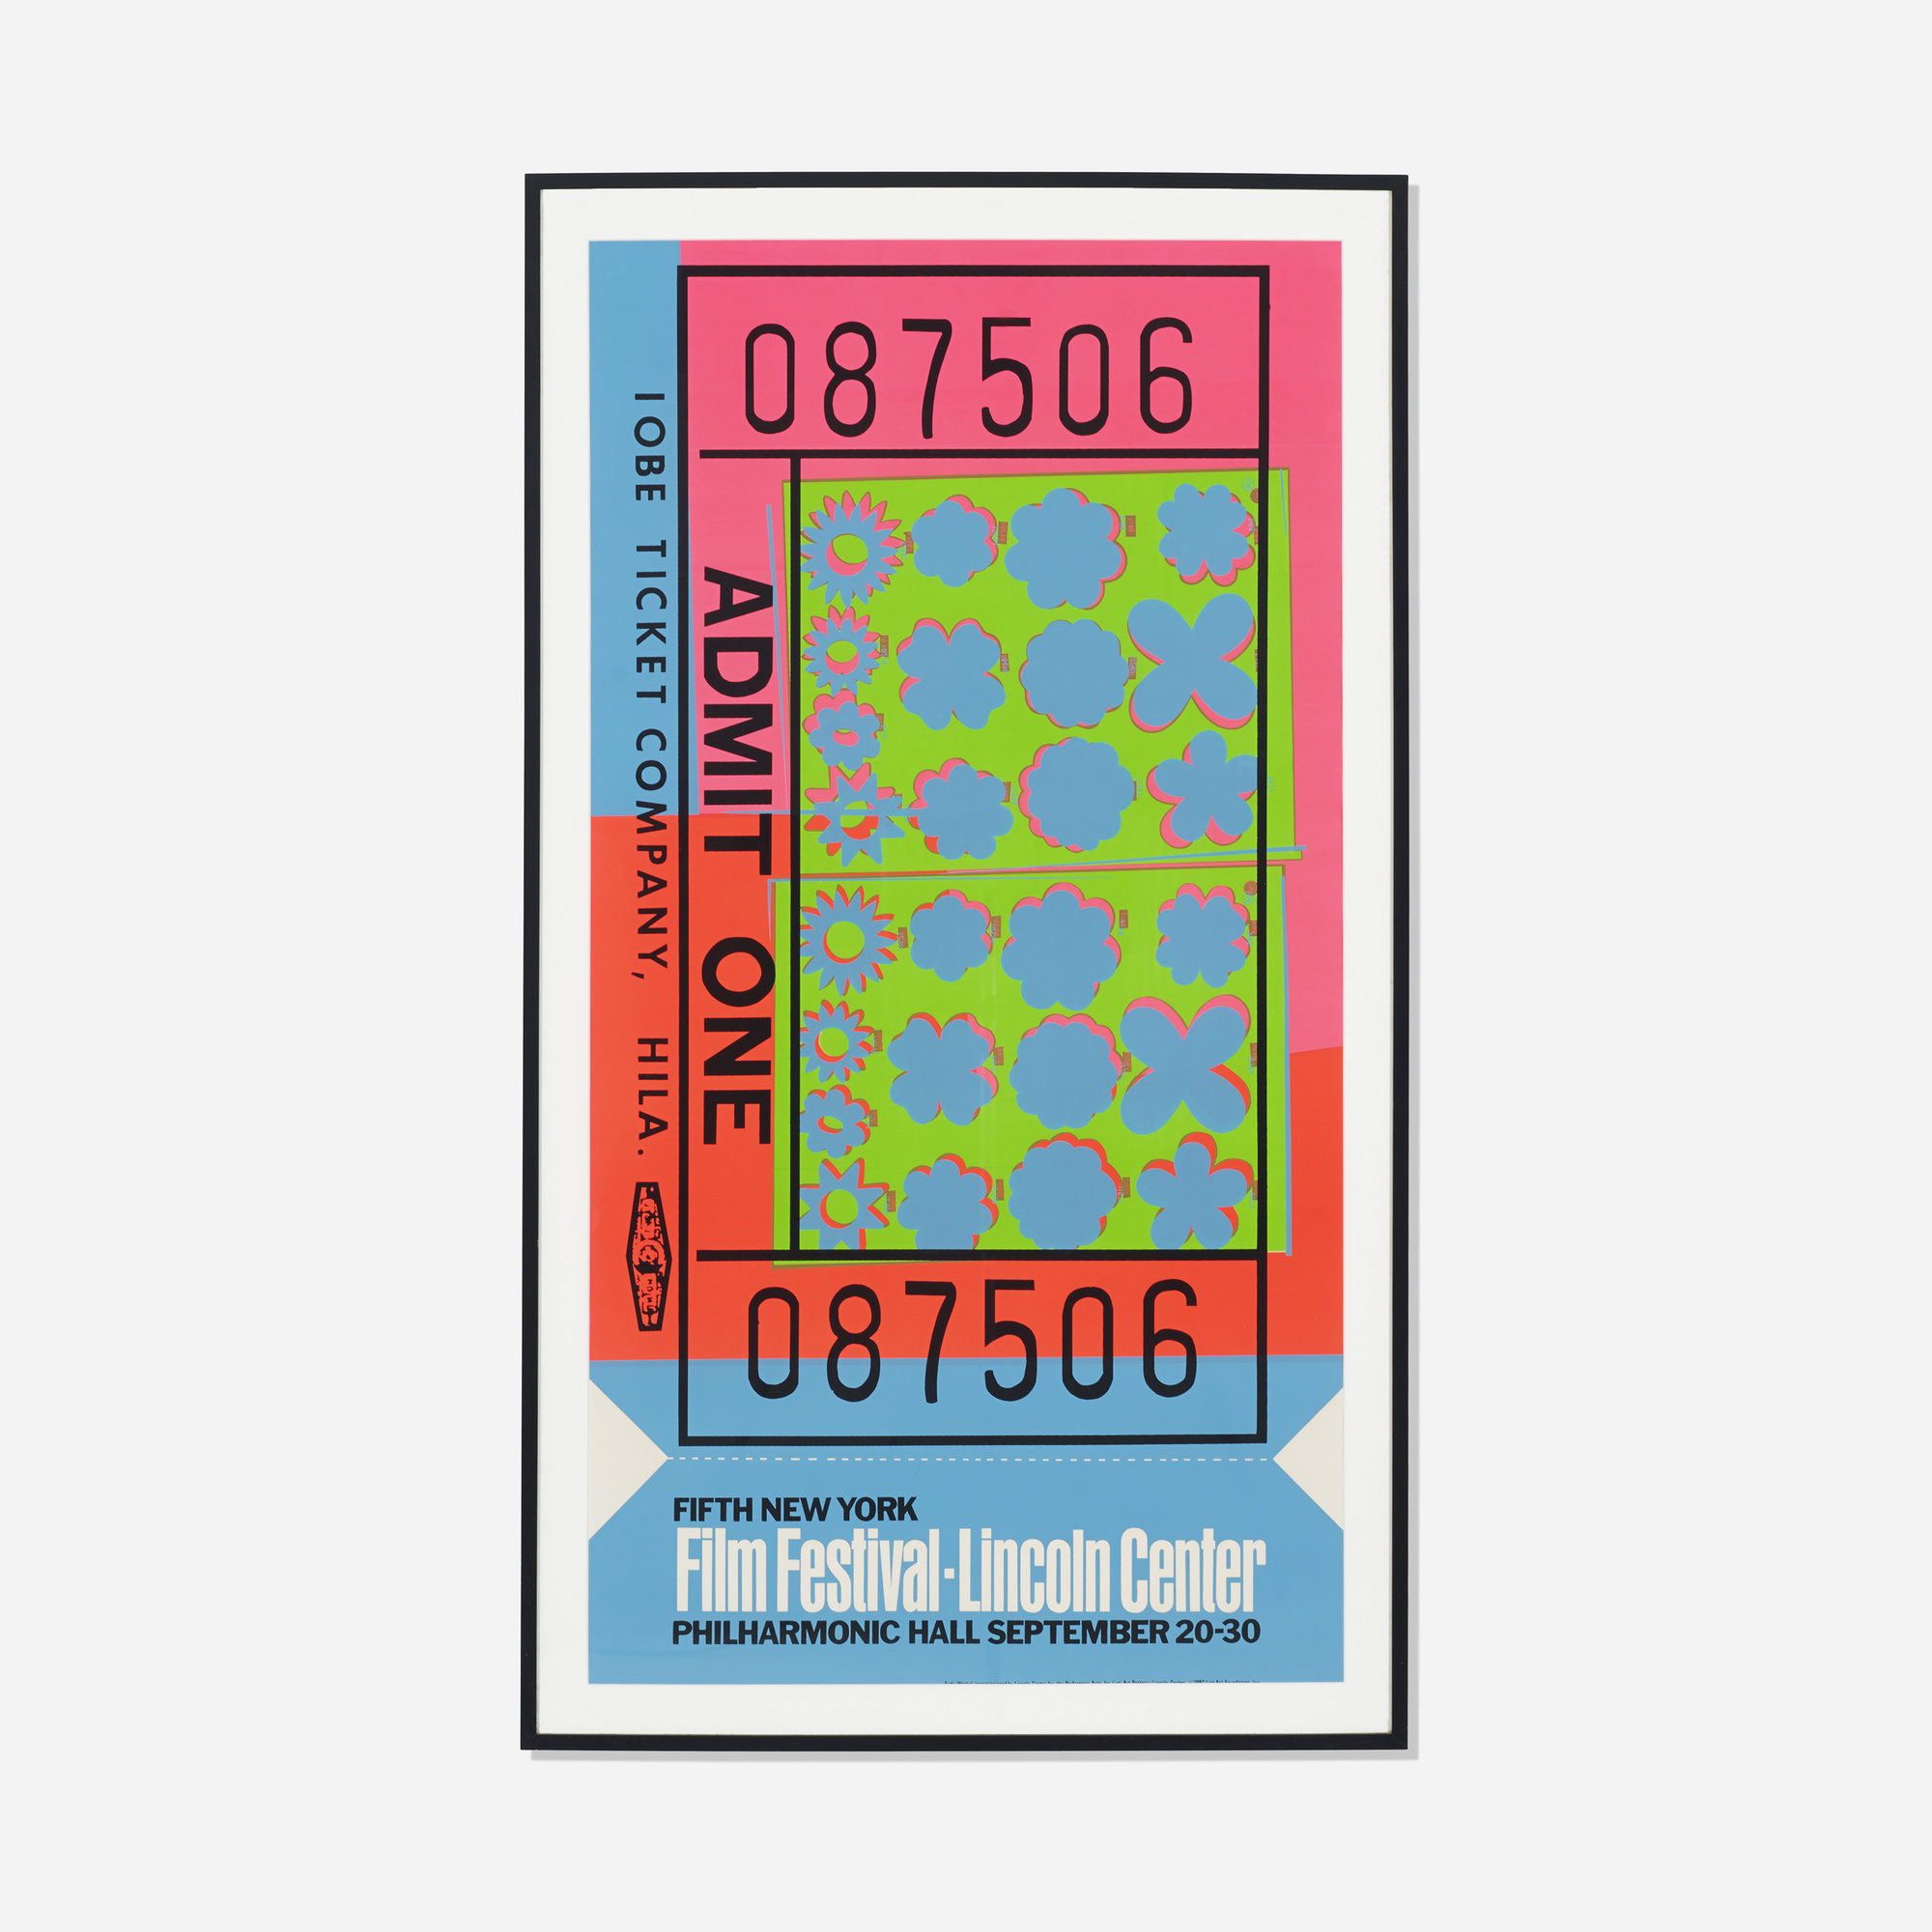 204: ANDY WARHOL, Ticket Stub exhibition poster for the Film ...